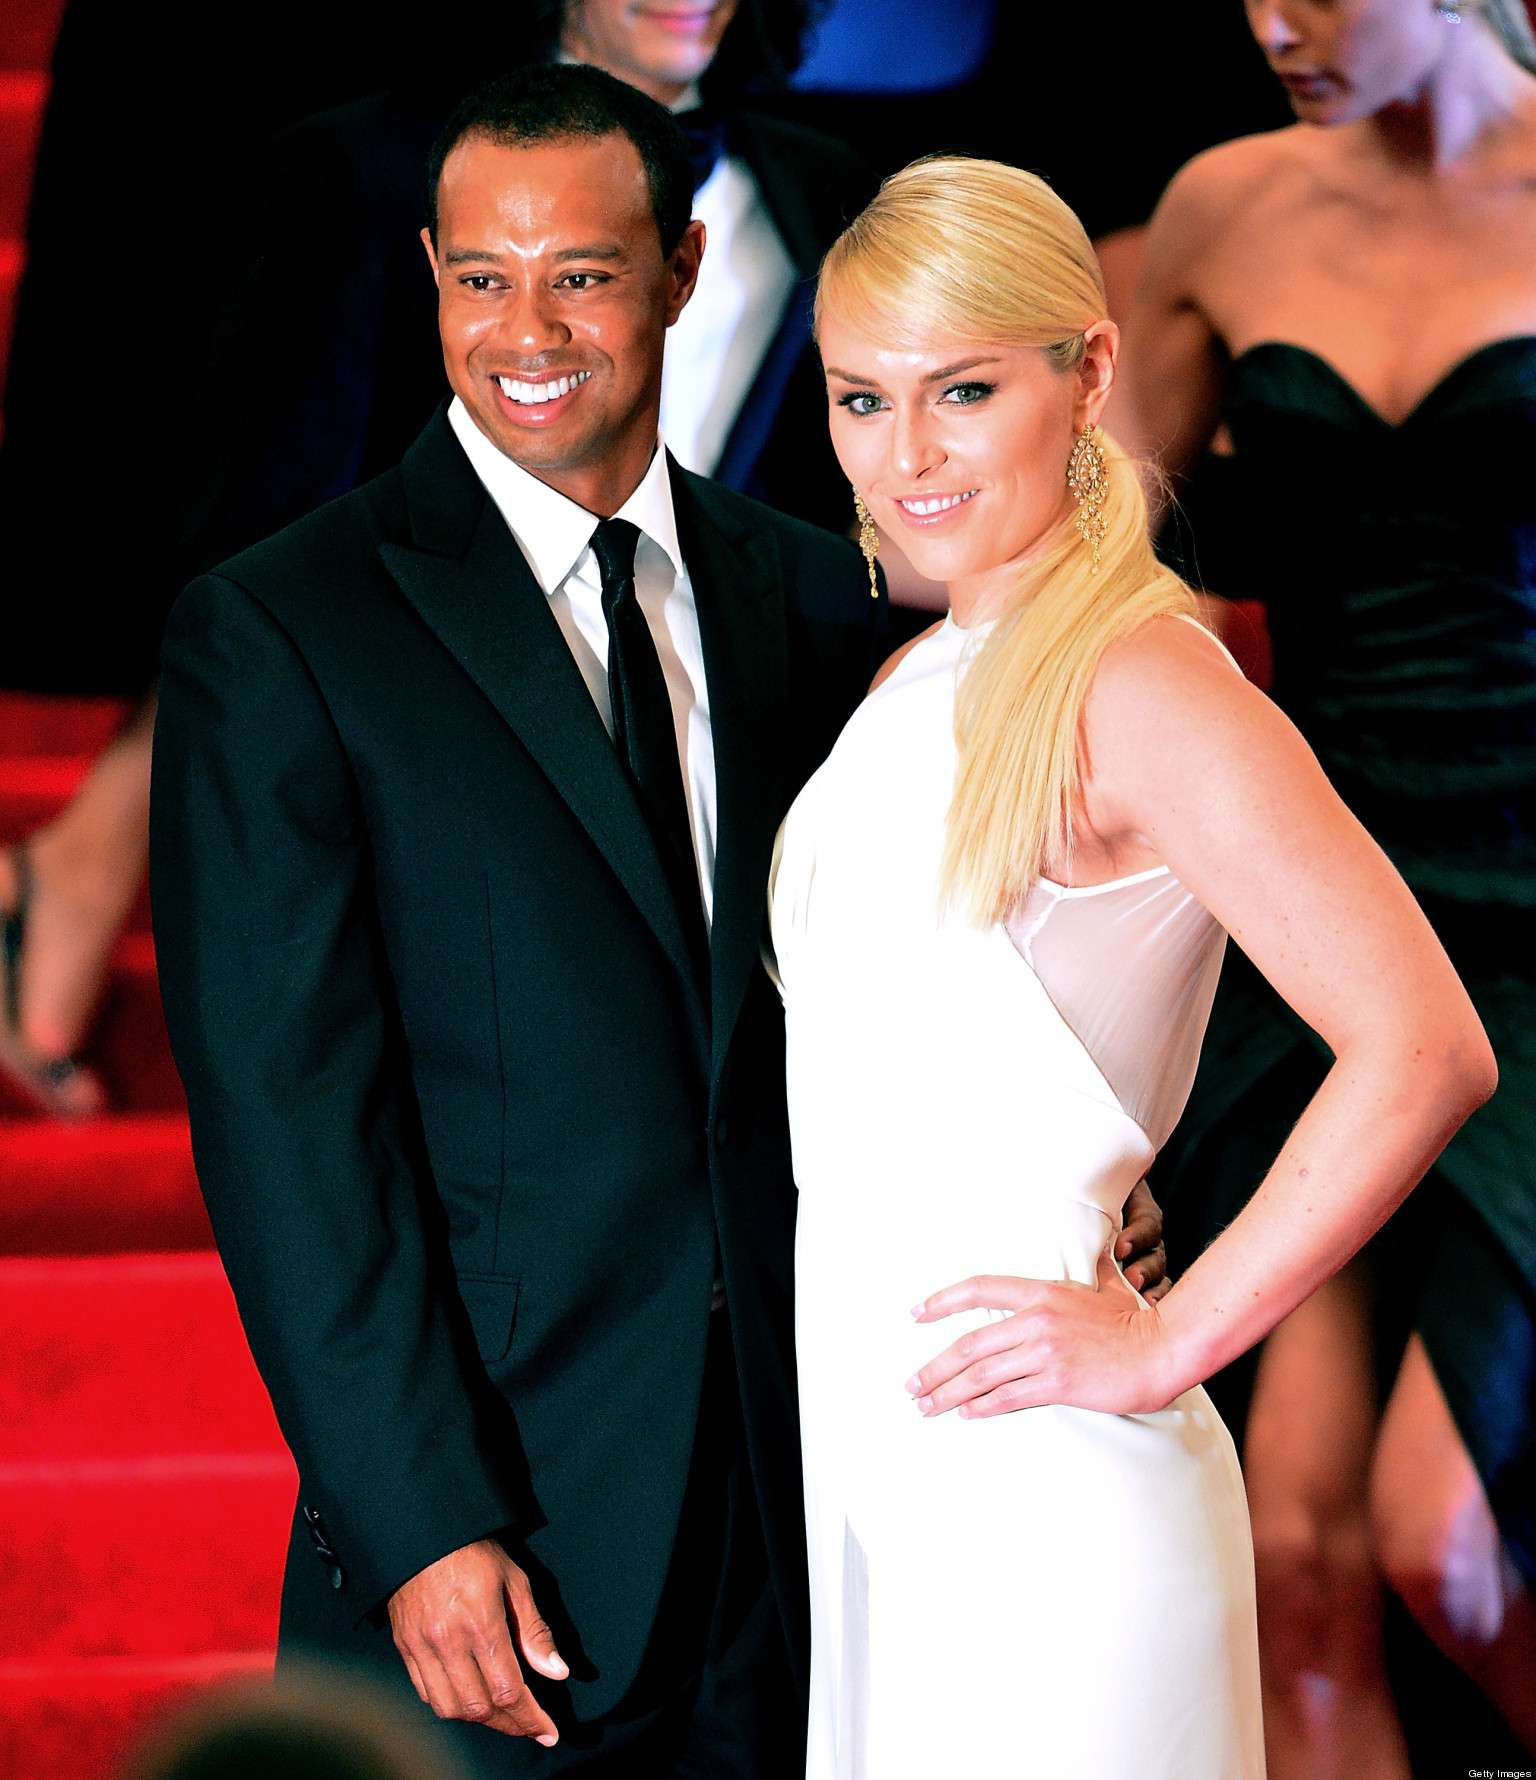 tiger woods and lindsey vonn married